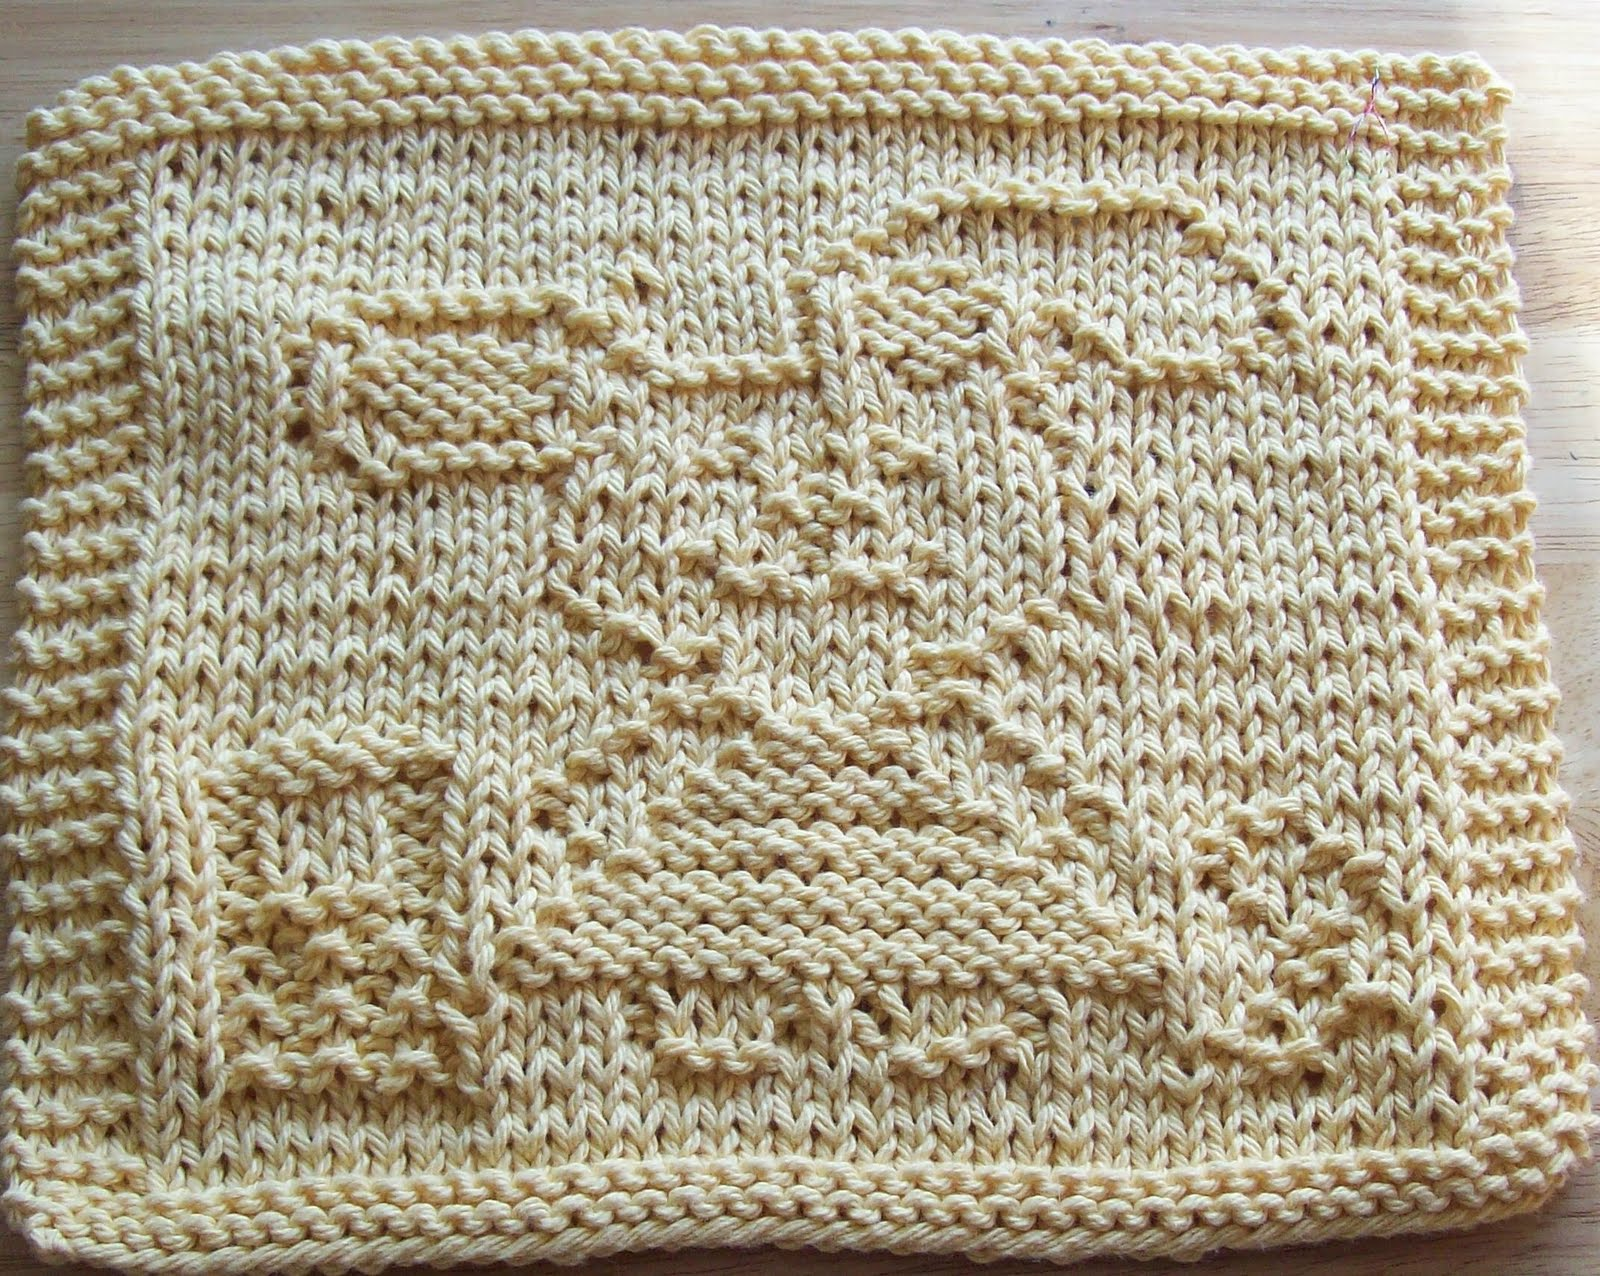 Knitted Dishcloth Patterns For Easter : DigKnitty Designs: Bunny in a Dress Knit Dishcloth Pattern